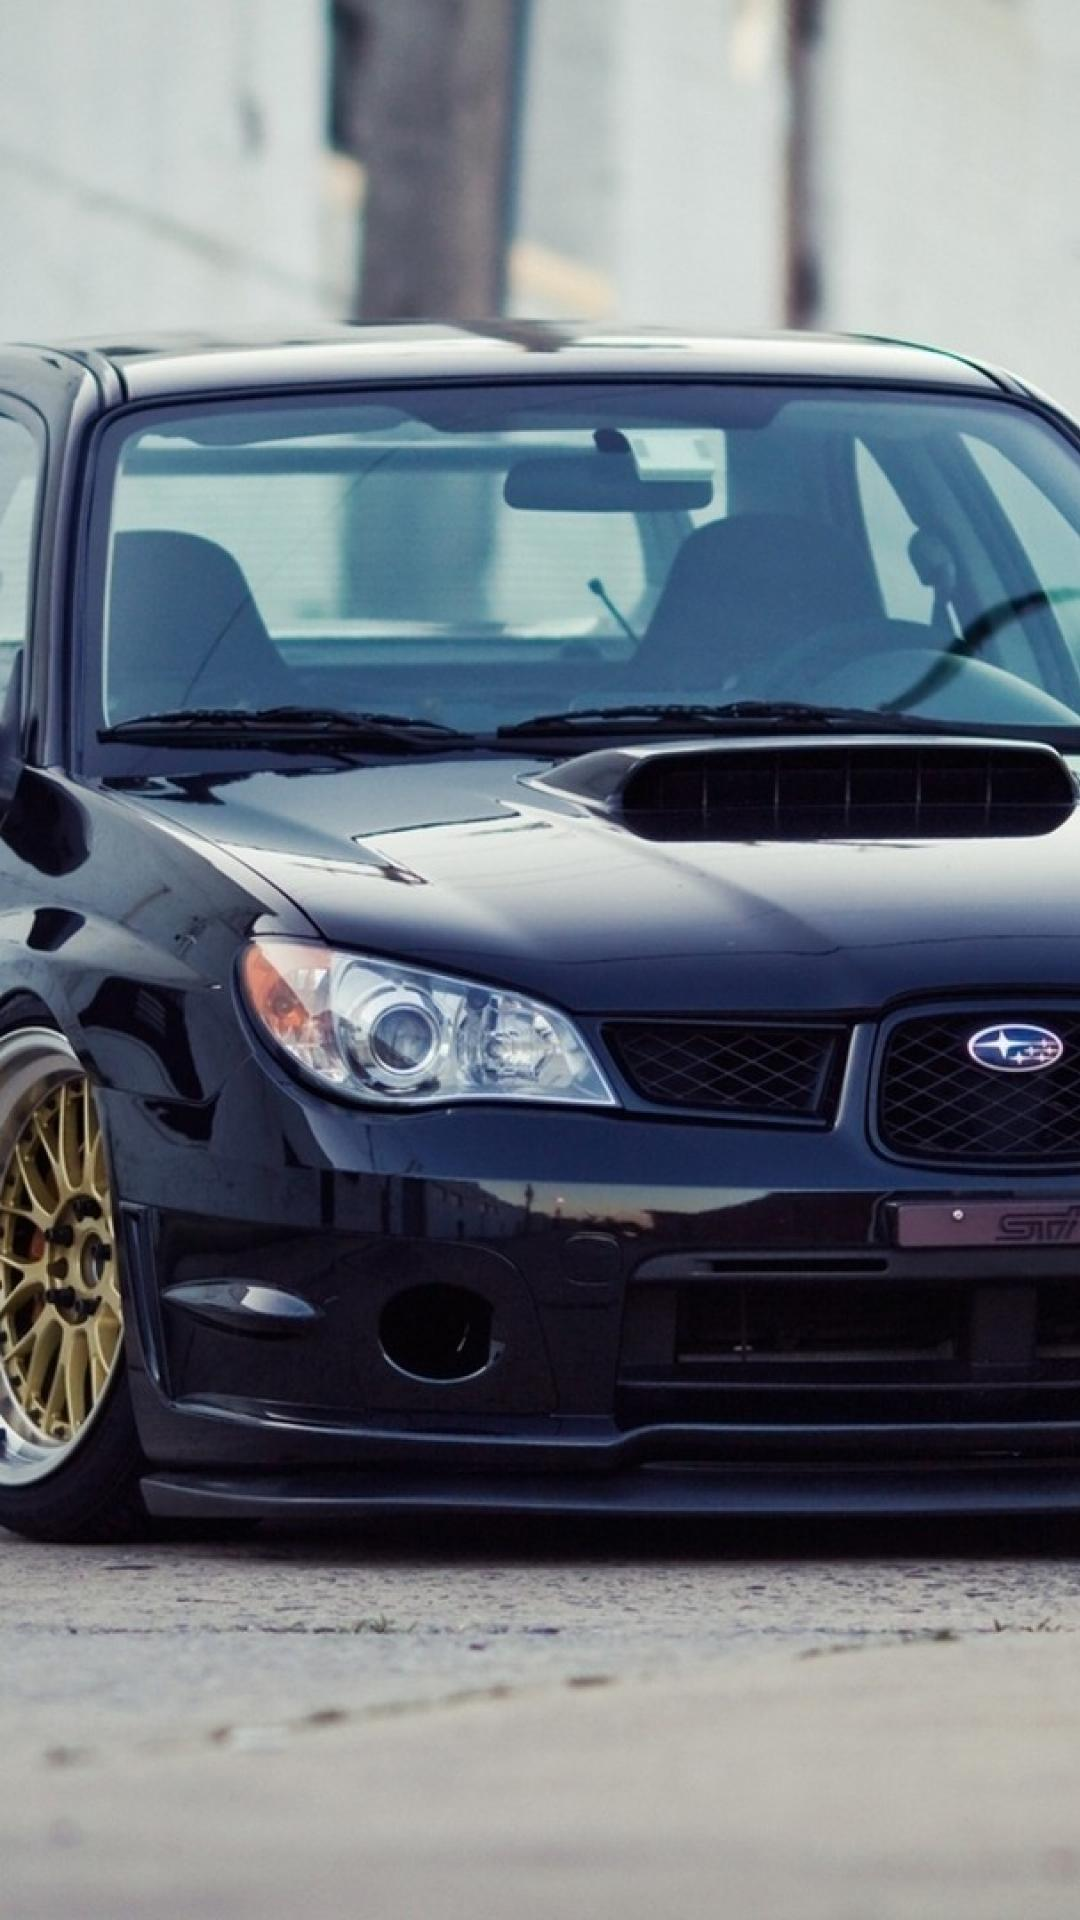 Wrx Iphone Wallpaper Posted By Michelle Thompson